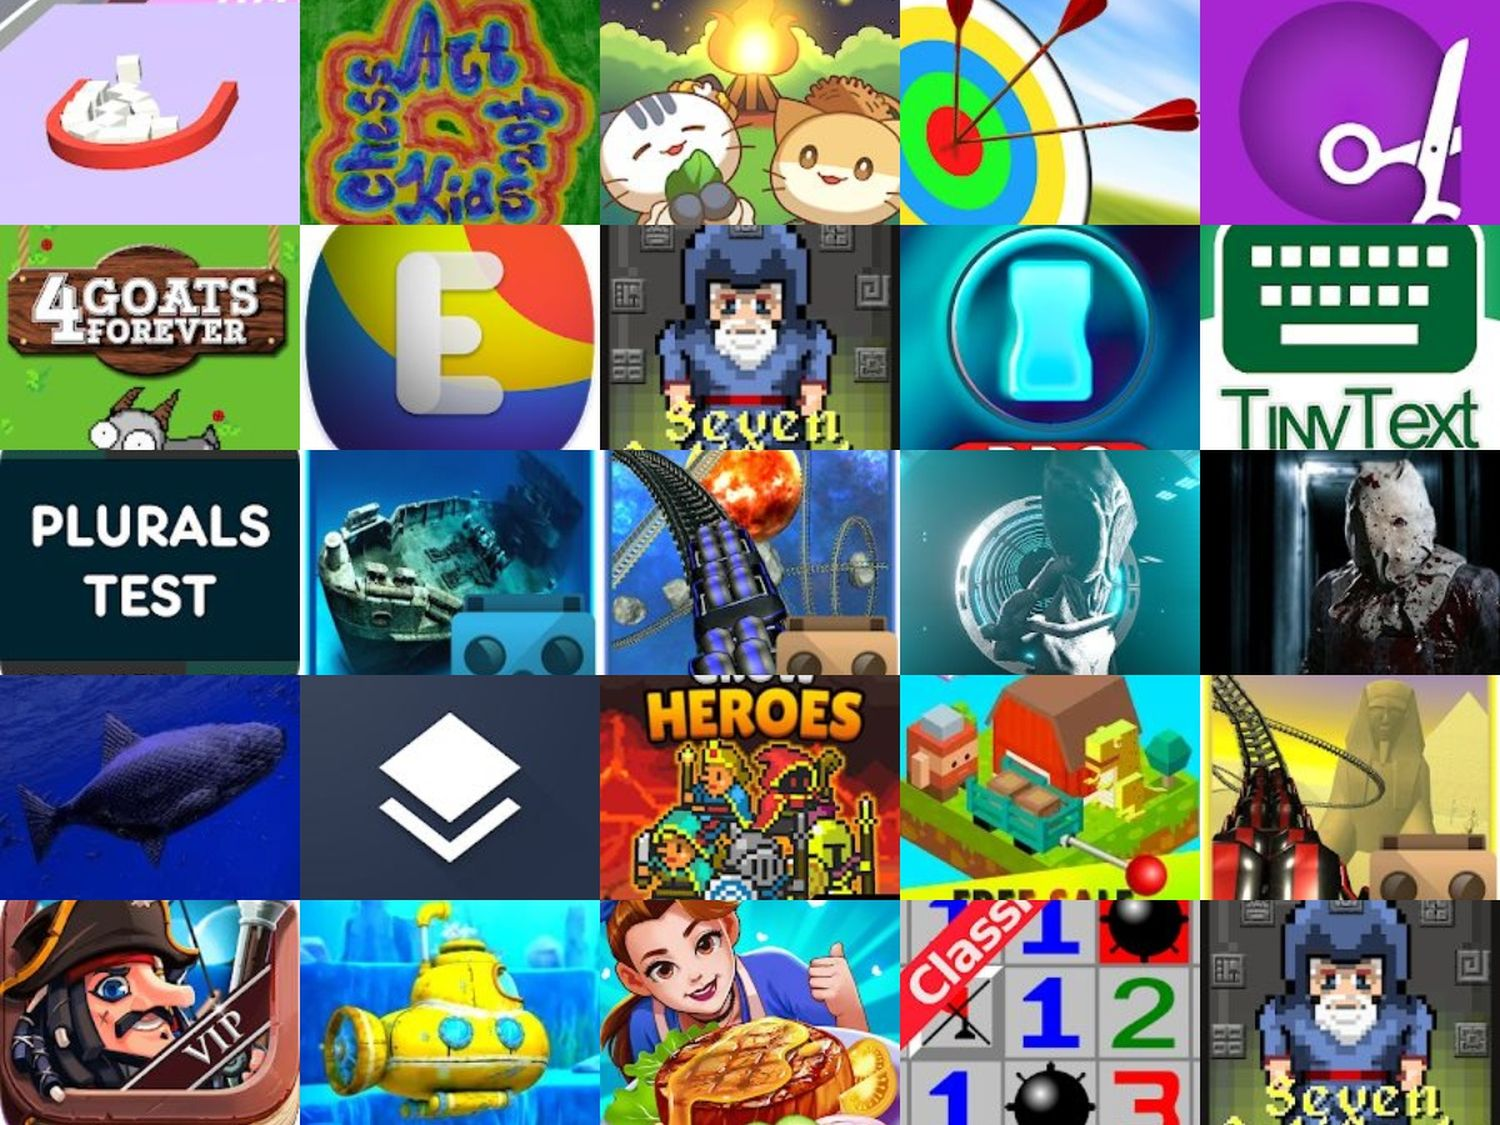 apps 09.02.2021